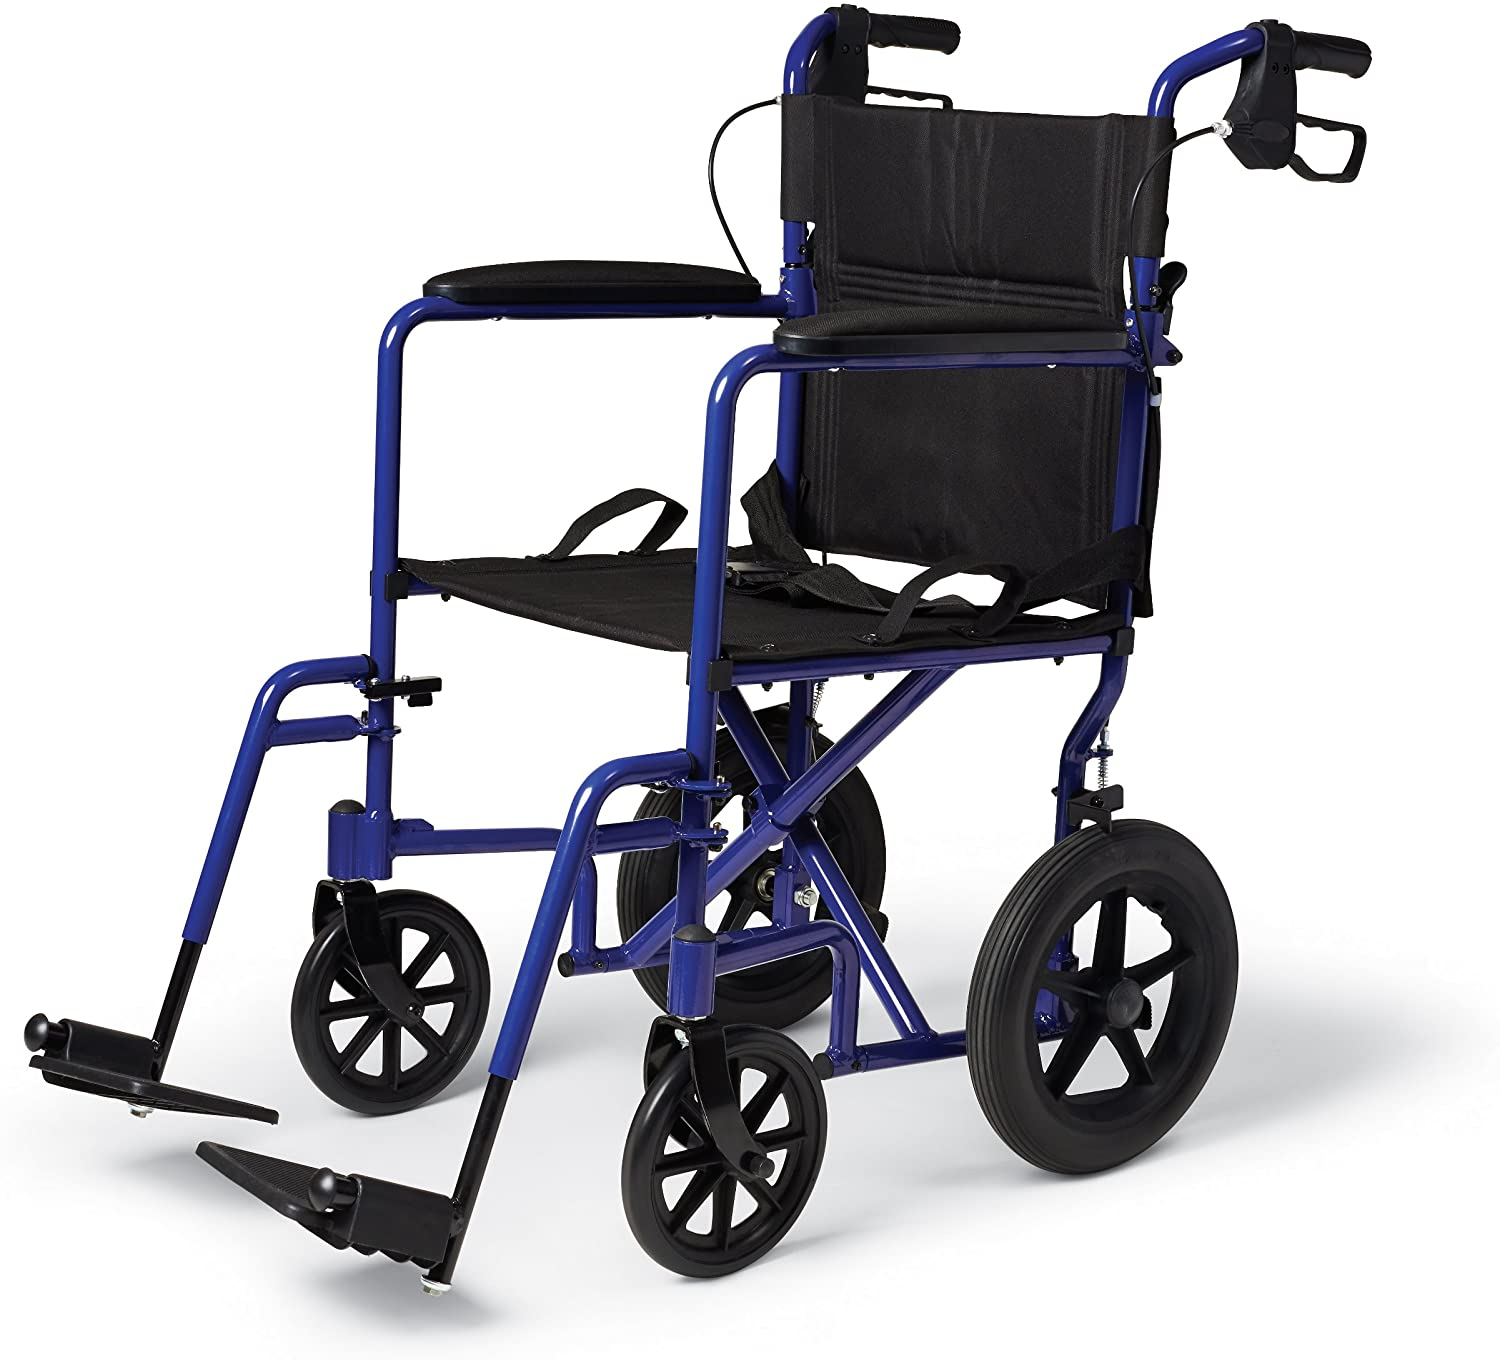 Medline Folding Transport Wheelchair With Brakes